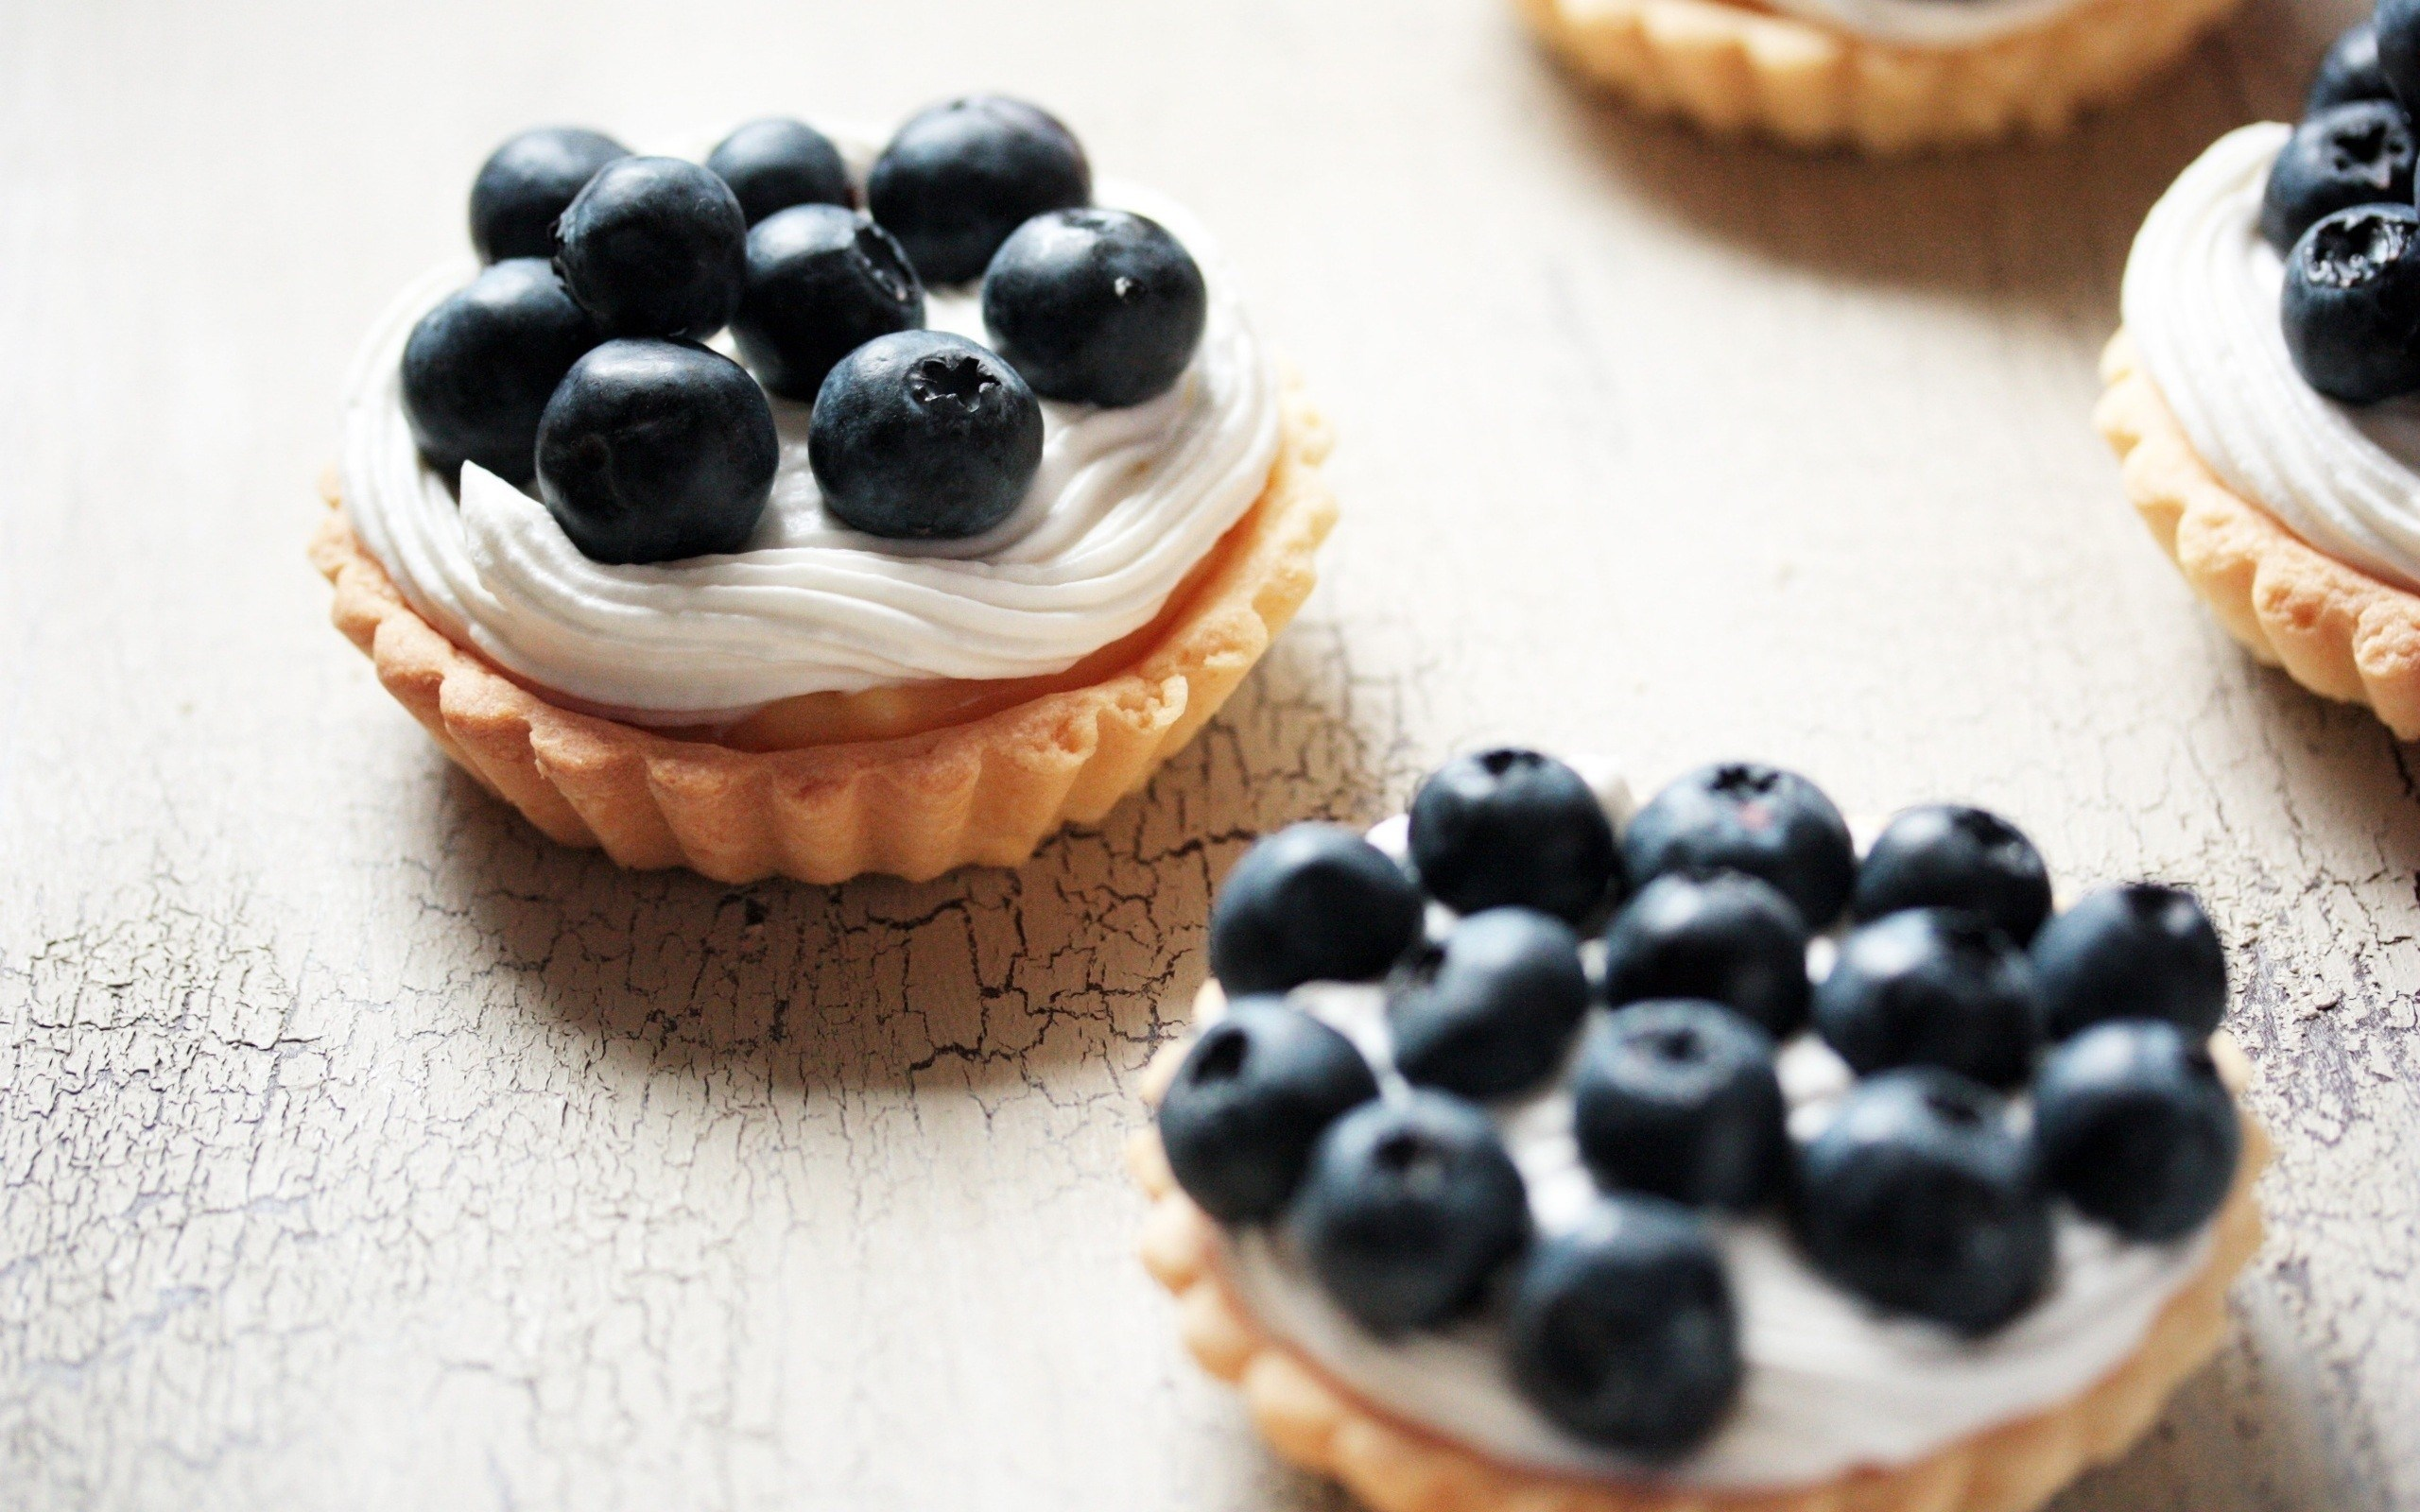 Food Cake Cream Blueberries Tasty